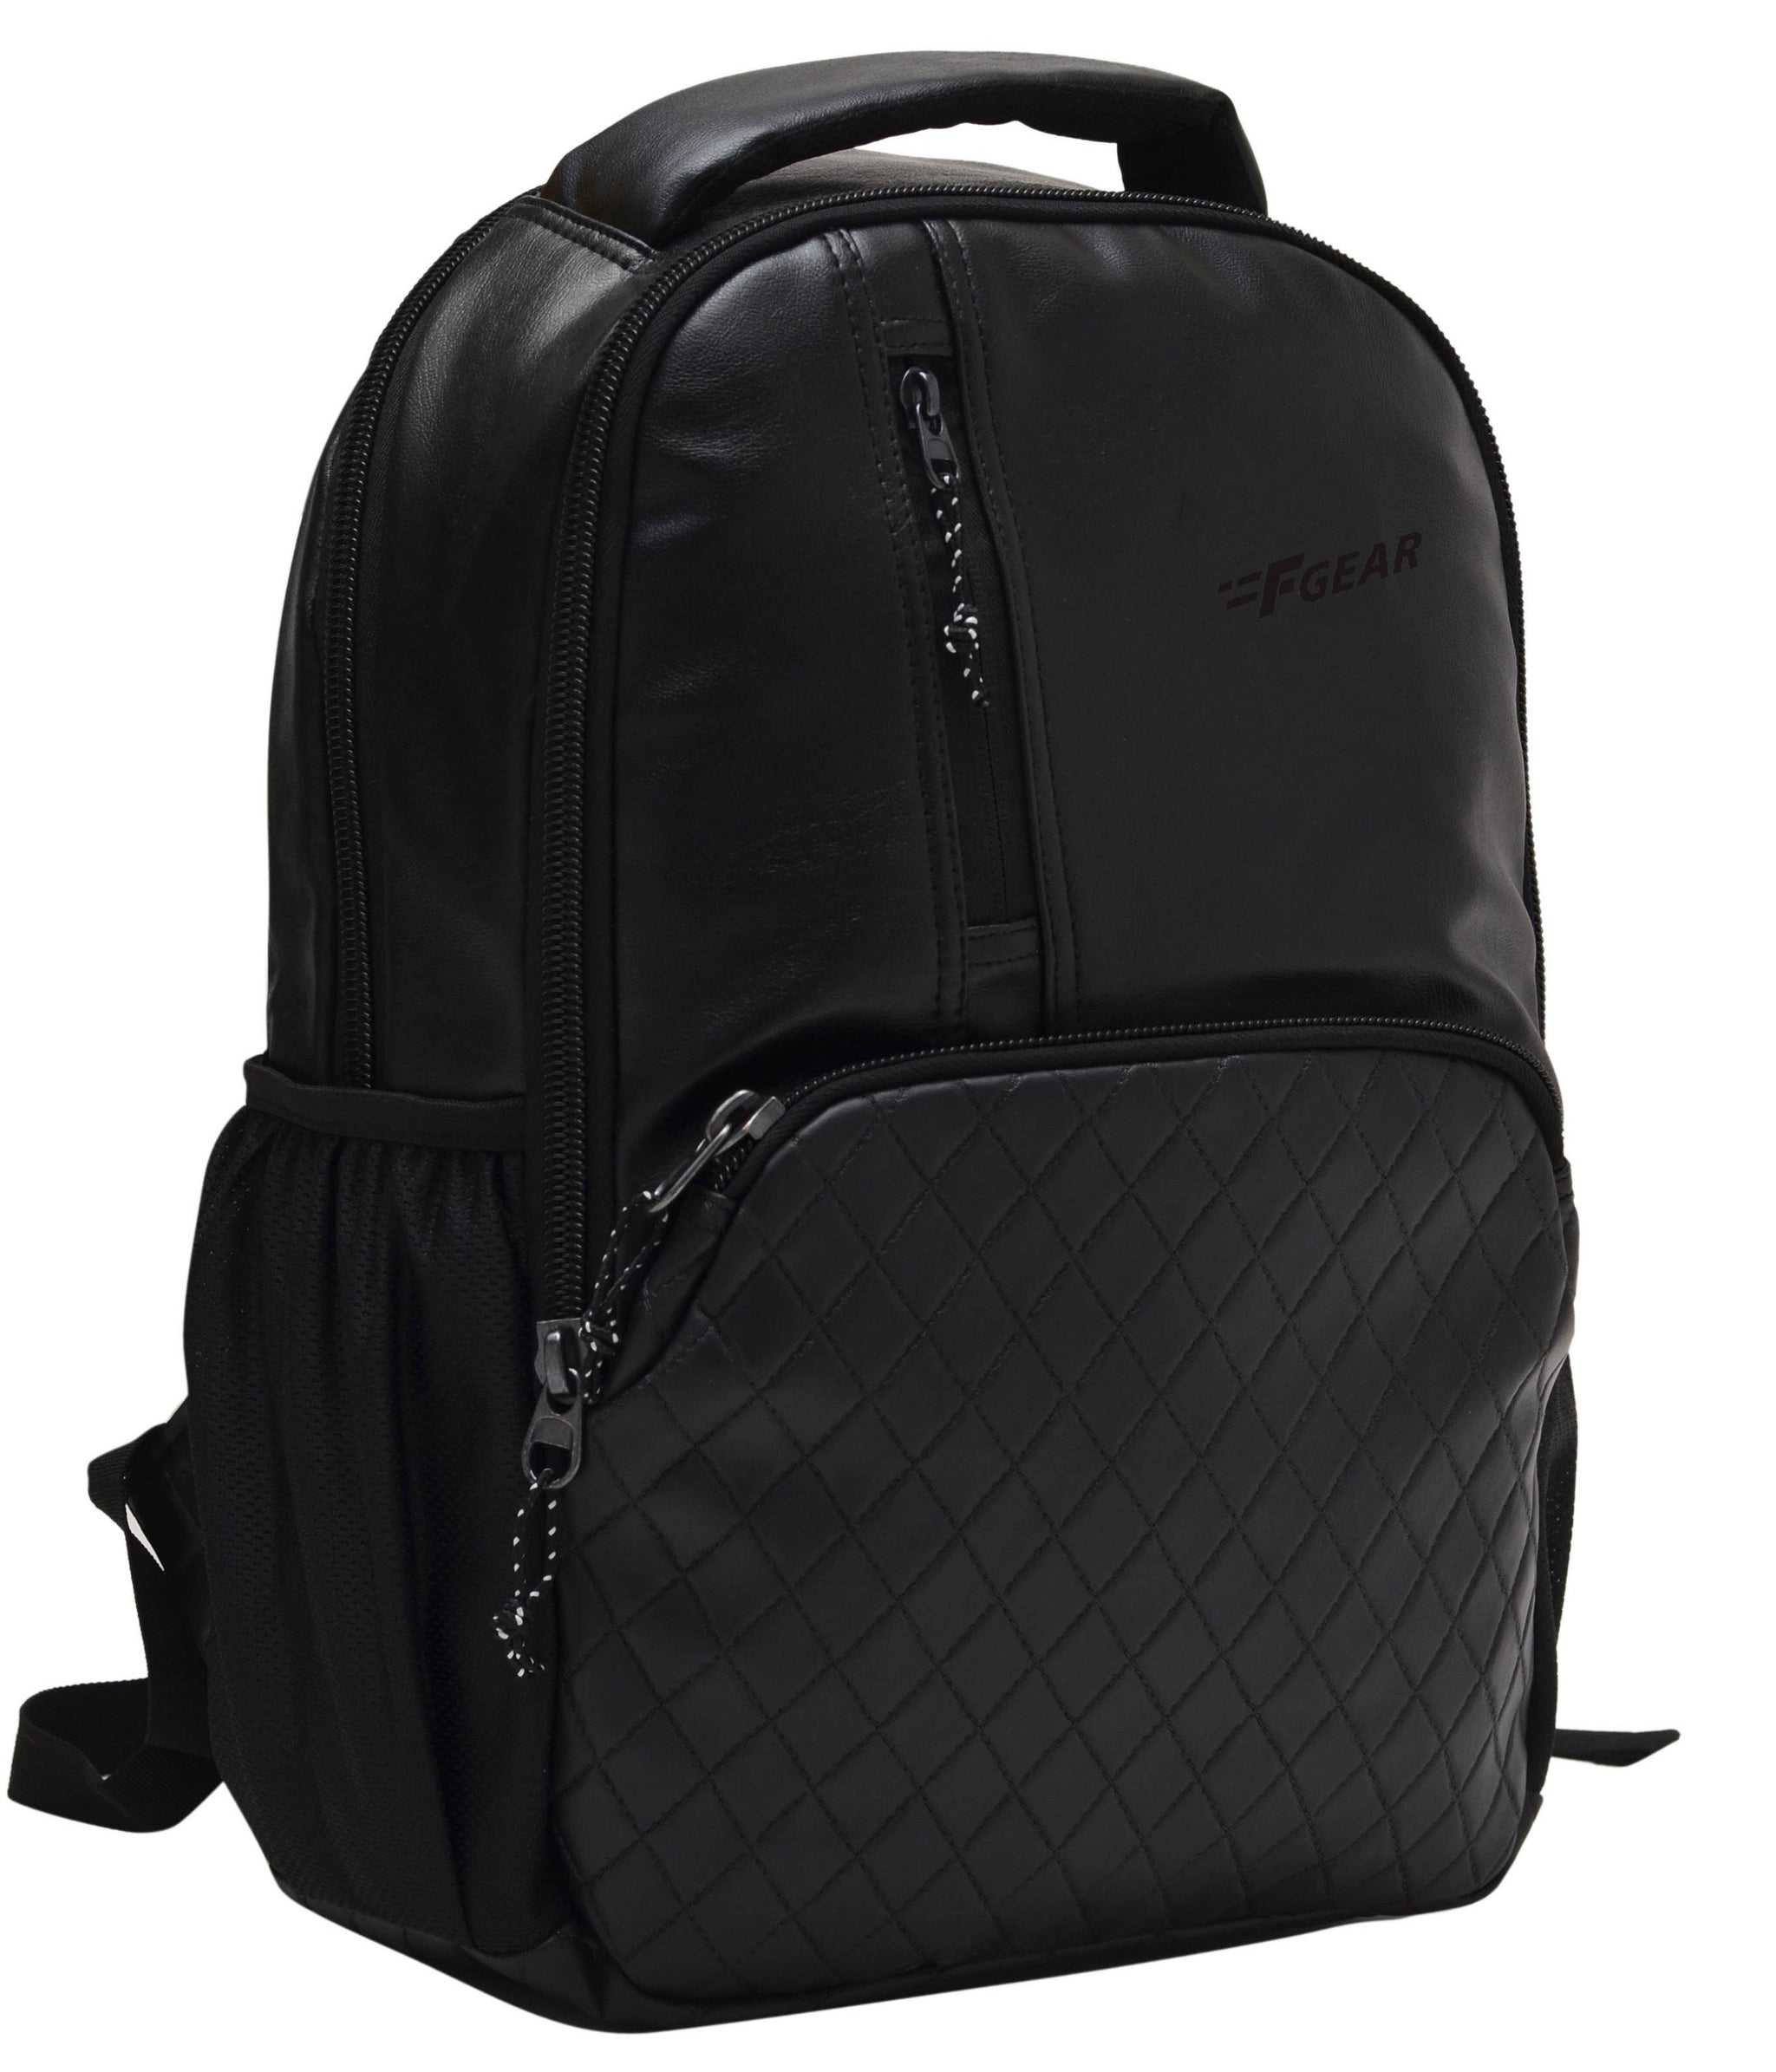 F Gear CEO Black 25 liter Artificial Leather Laptop Backpack (2513)